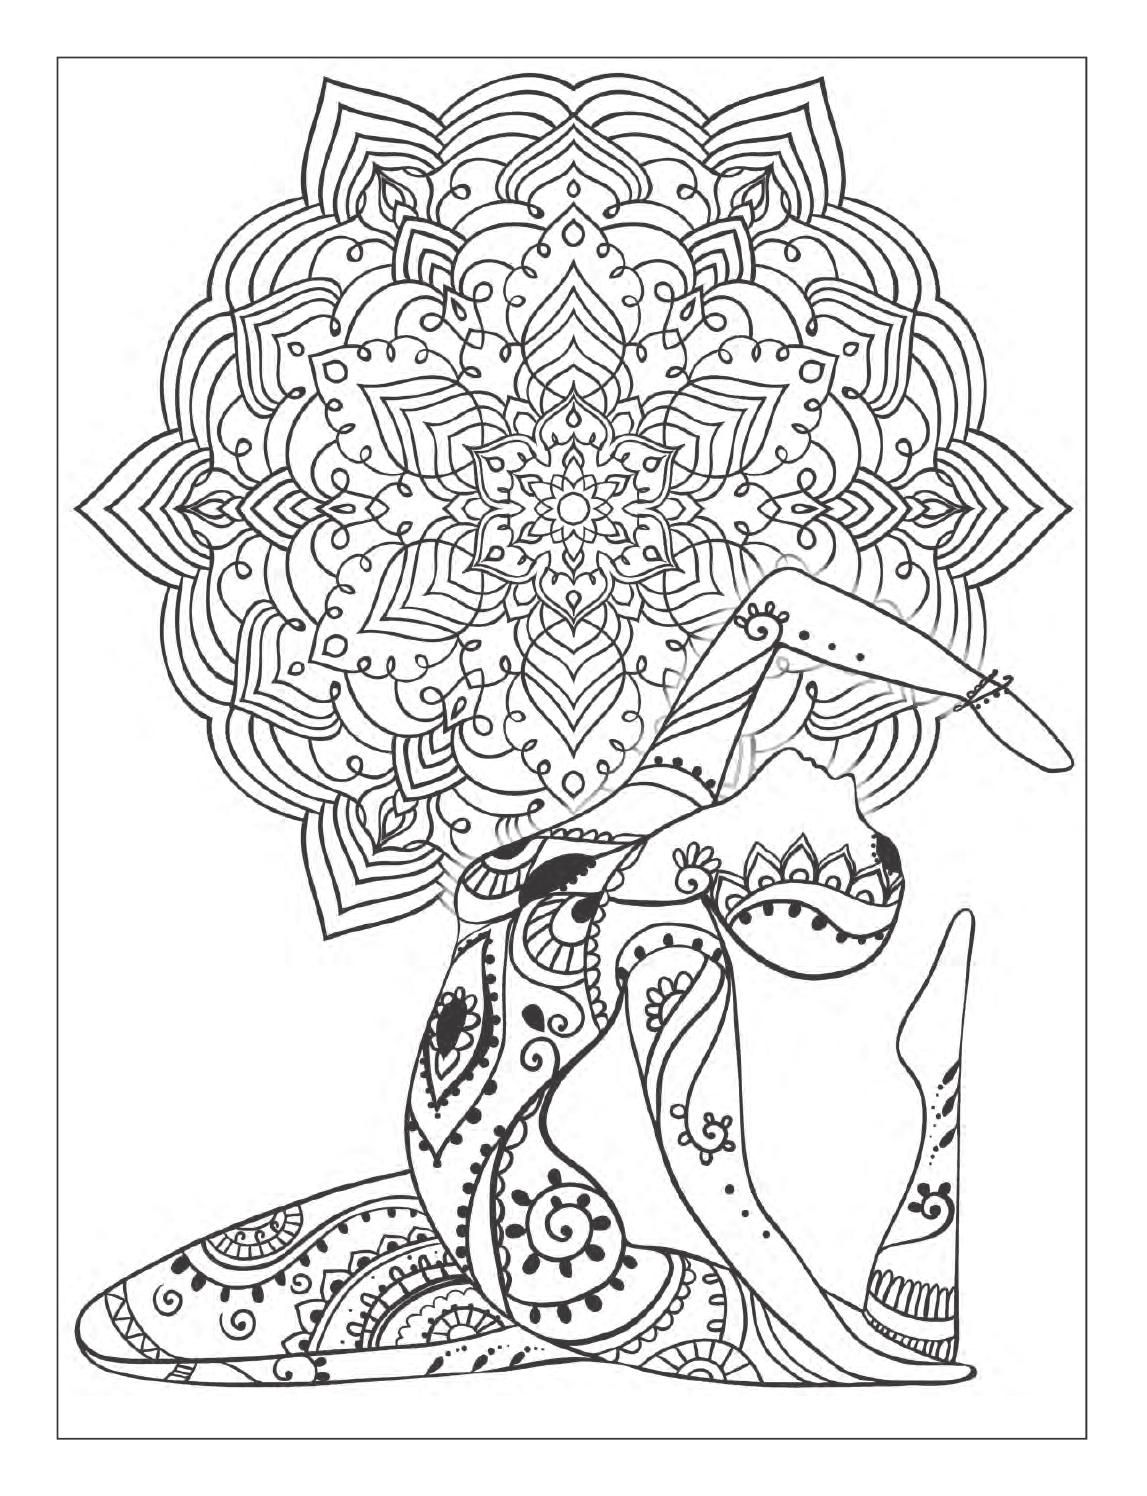 Yoga And Meditation Coloring Book For Adults With Yoga Poses And Neo Coloring